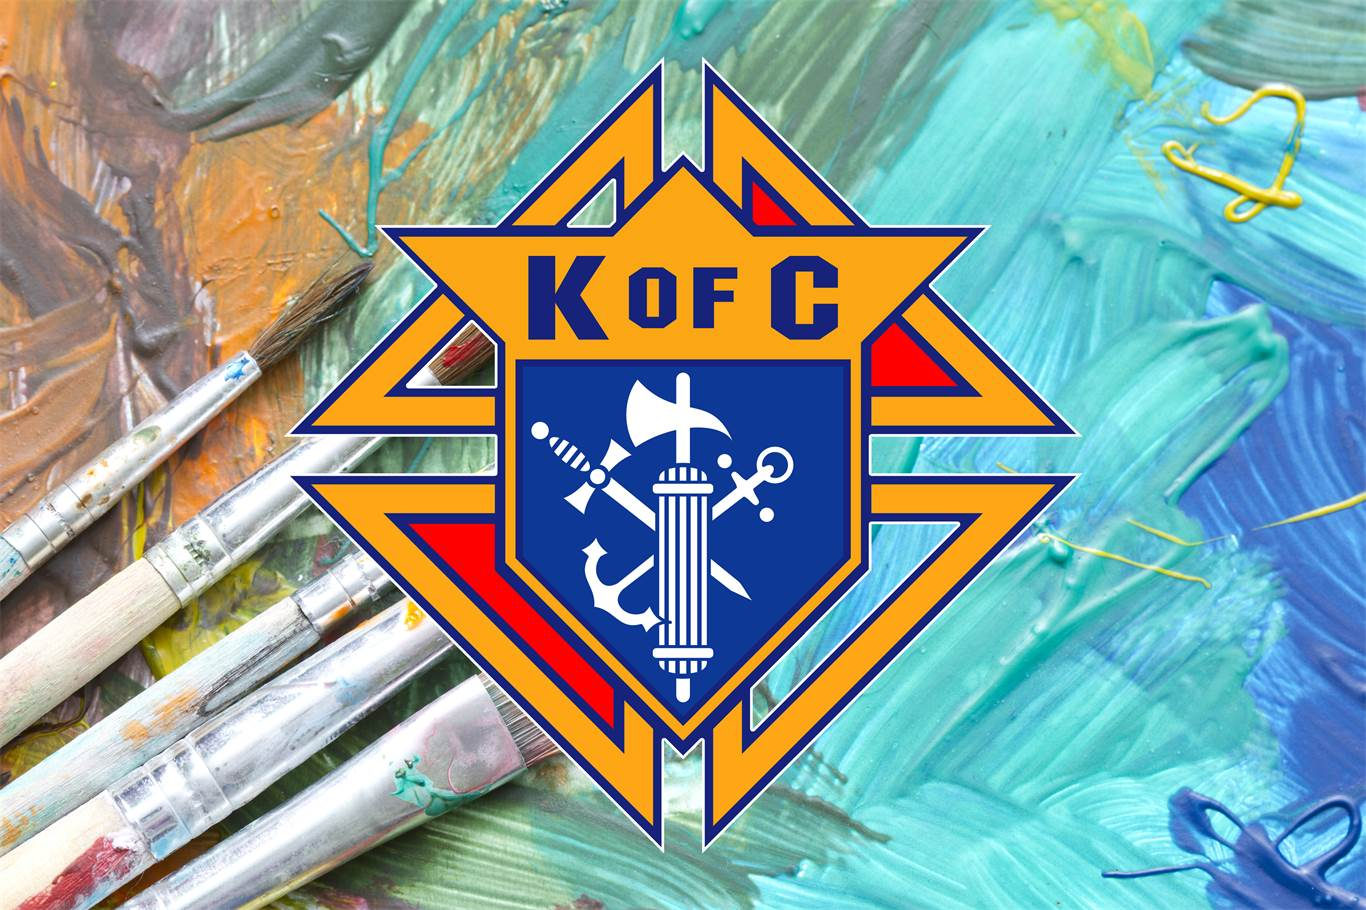 Knights of Columbus Substance Abuse and Awareness Poster Contest 2017